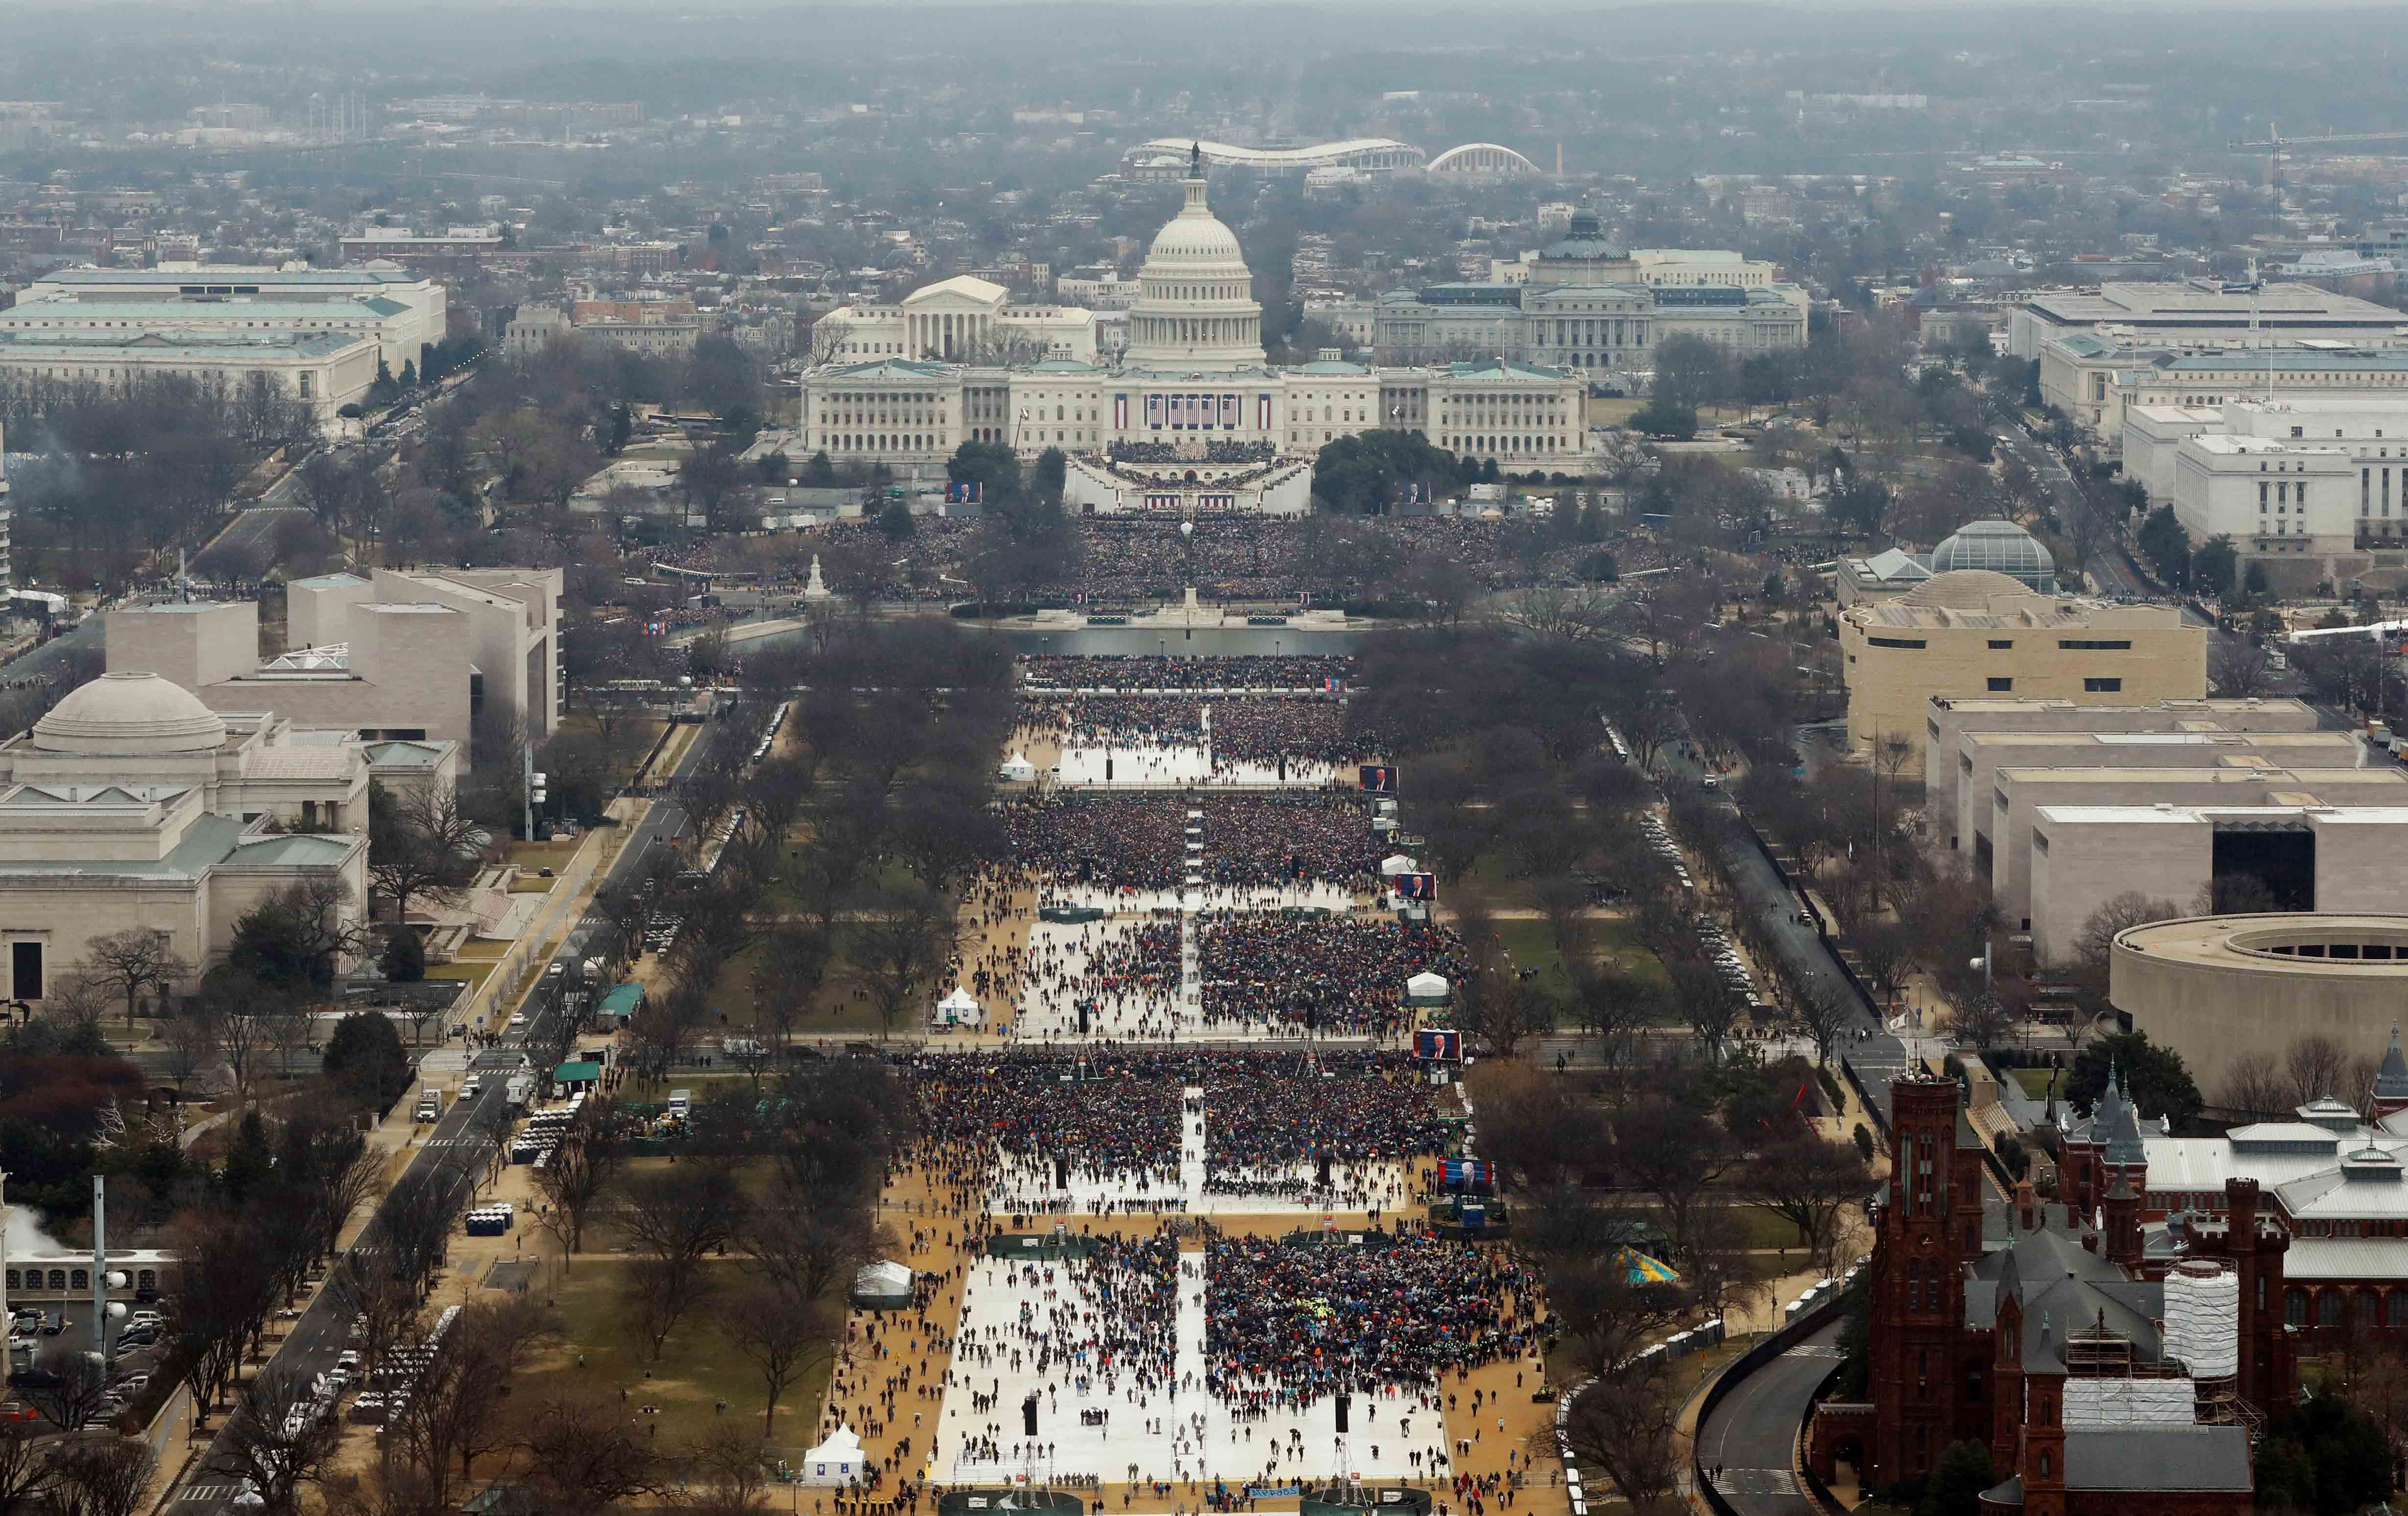 Donald Trump's inauguration.